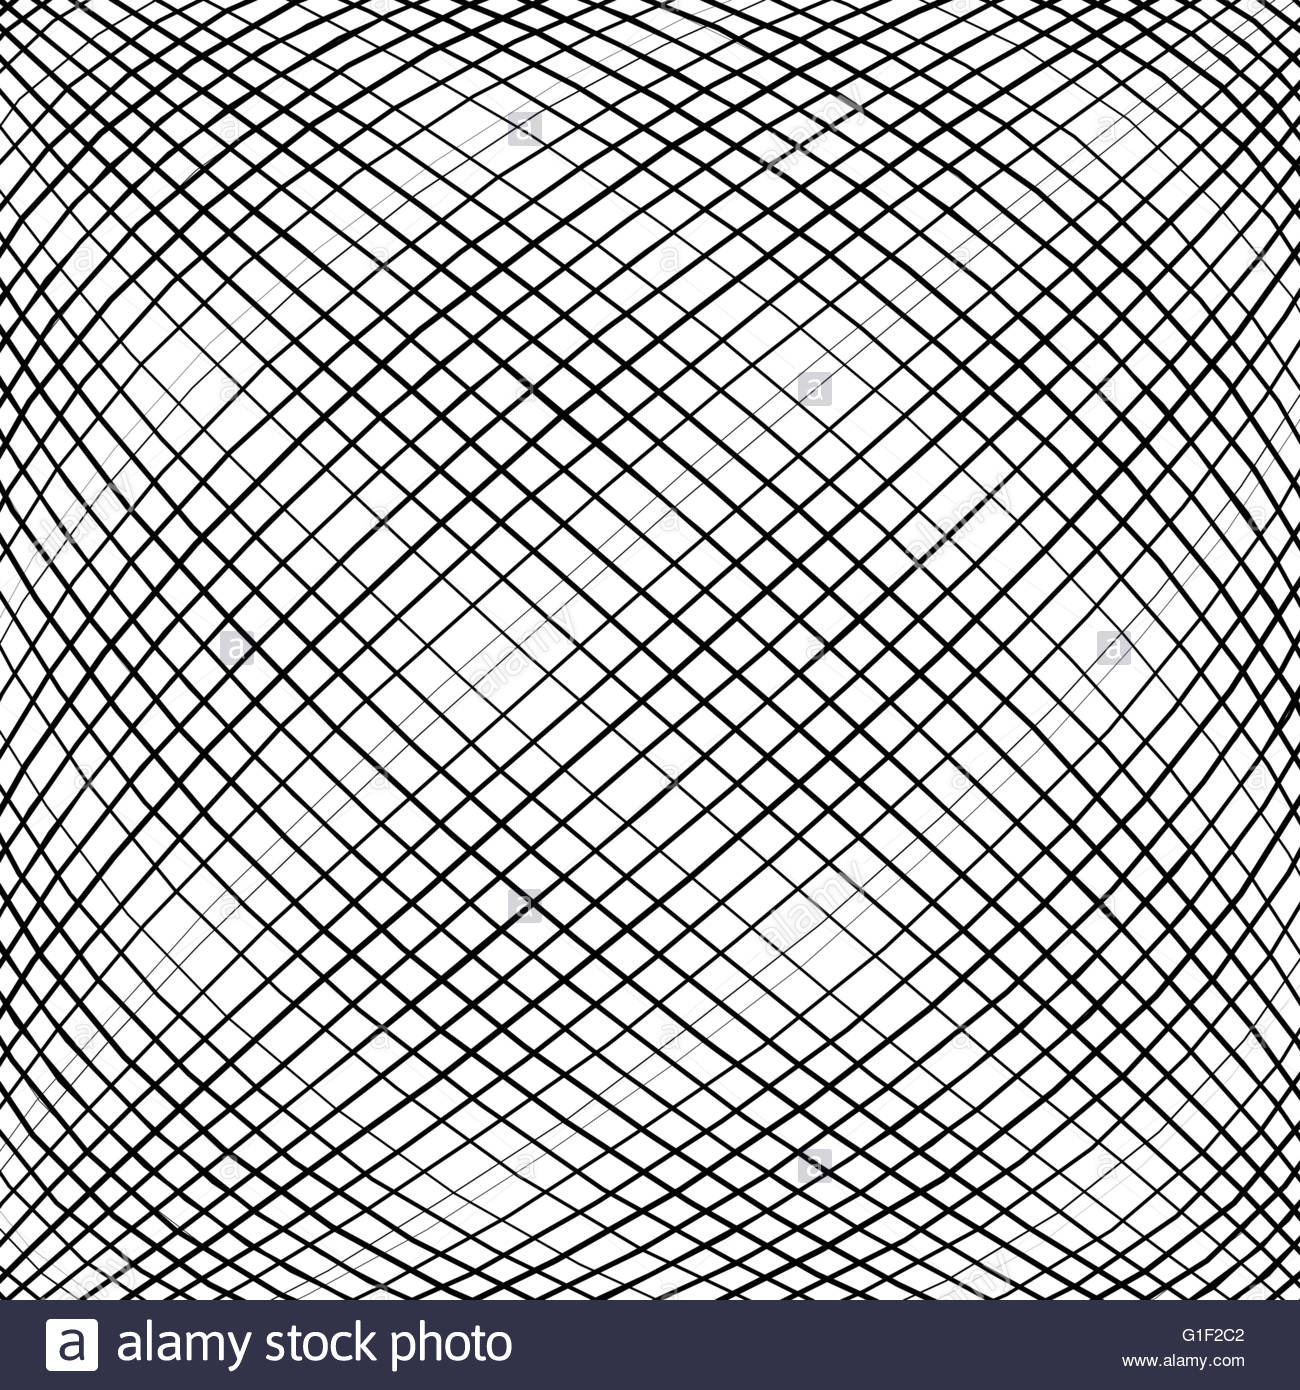 1300x1390 Grid, Mesh, Intersecting Lines Pattern With Convex Distortion